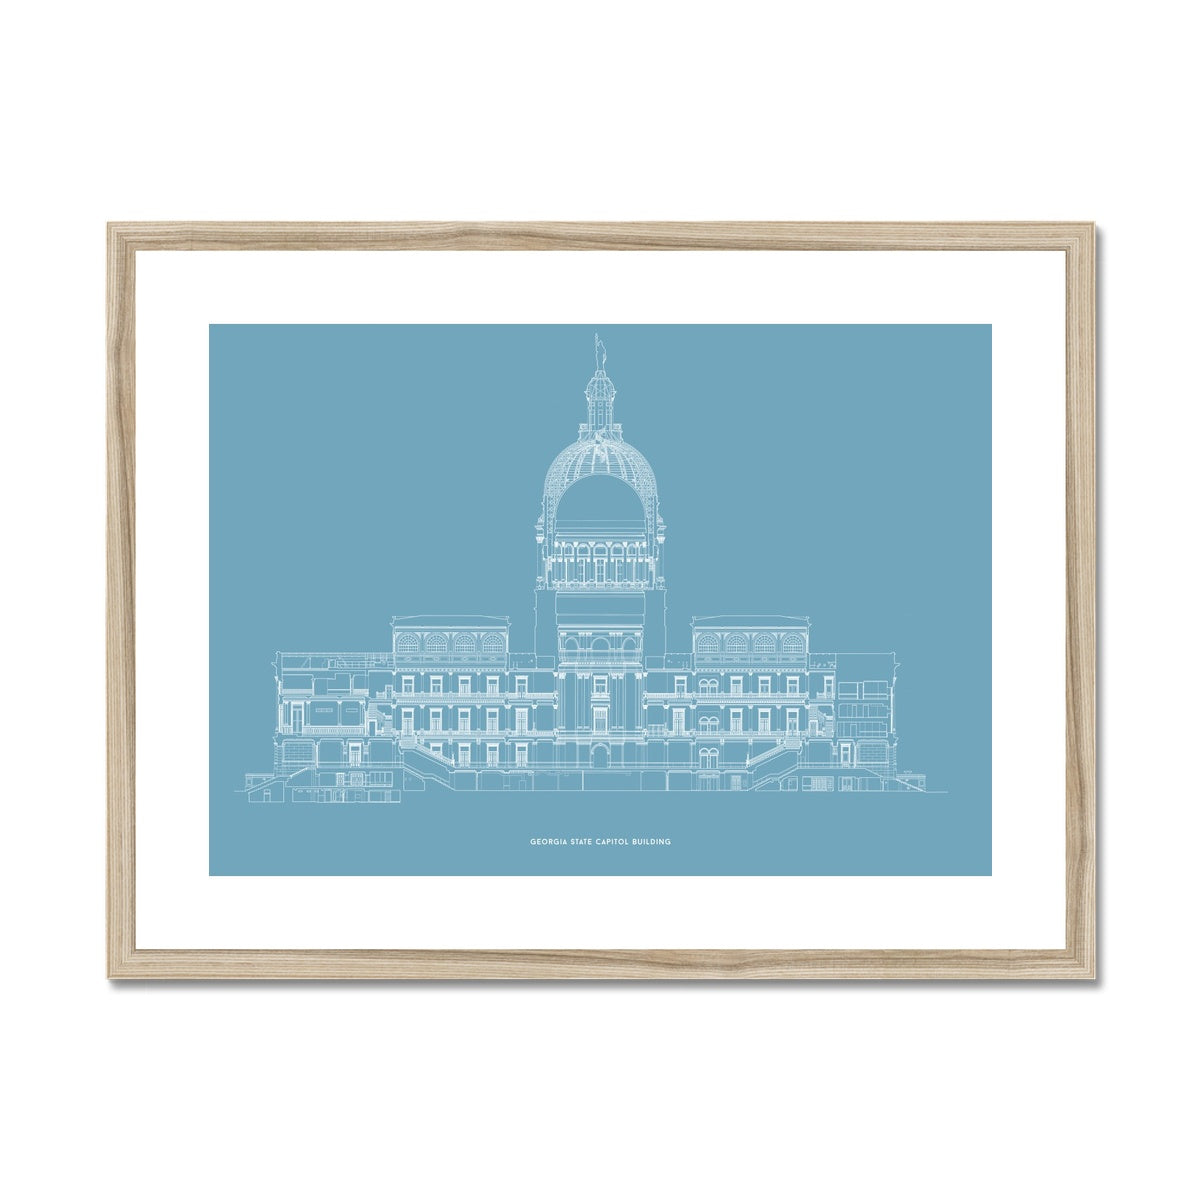 The Georgia State Capitol Building - West Elevation Cross Section - Blue -  Framed & Mounted Print